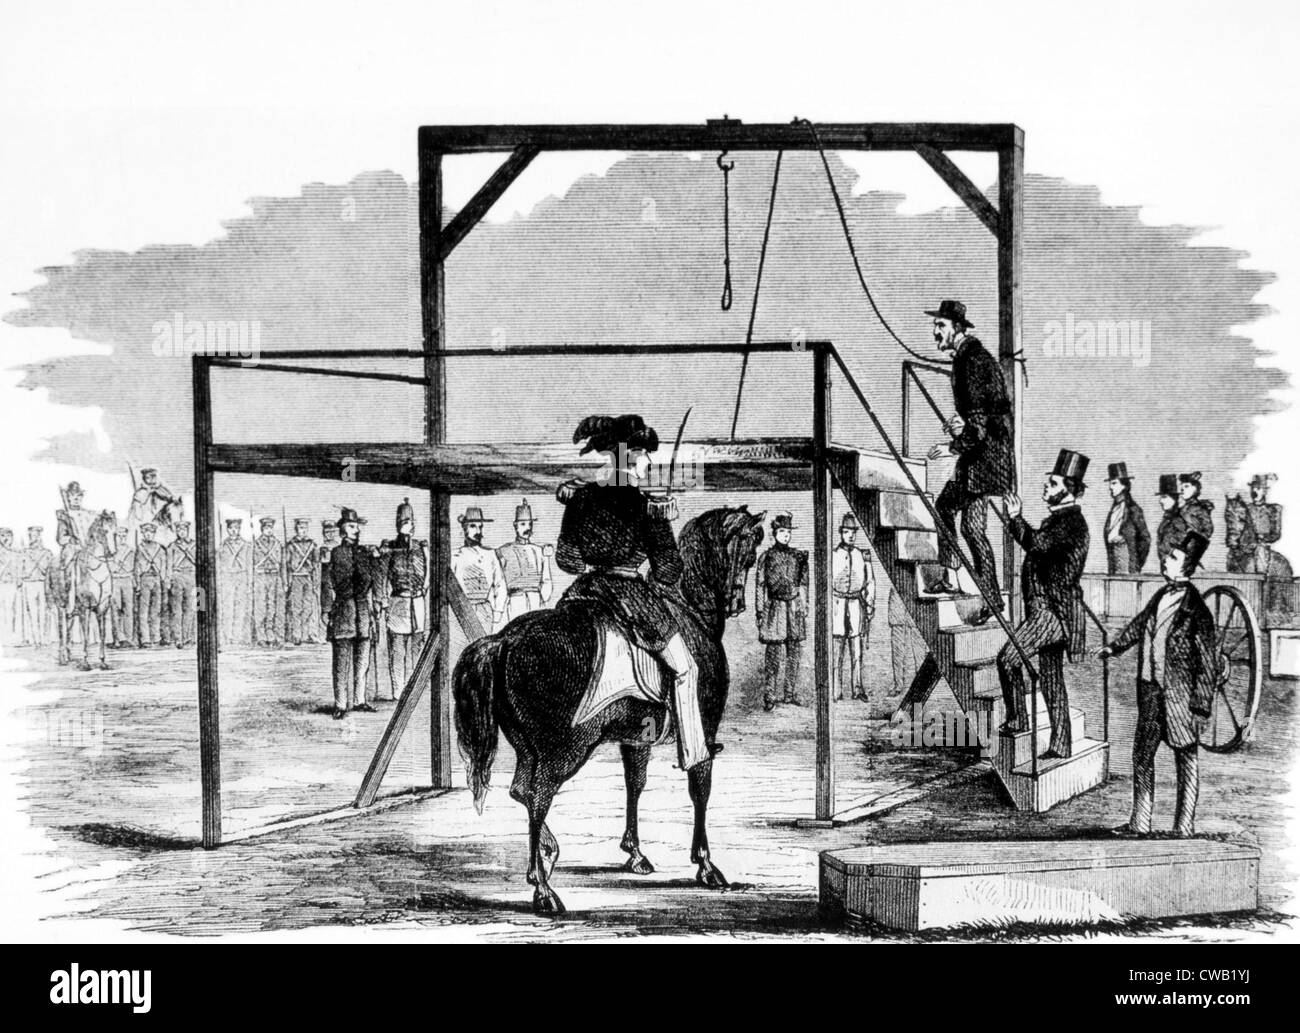 John Brown ascending the gallows at Harper's Ferry, Virginia on December 2nd, 1859, illustration from Leslie's - Stock Image